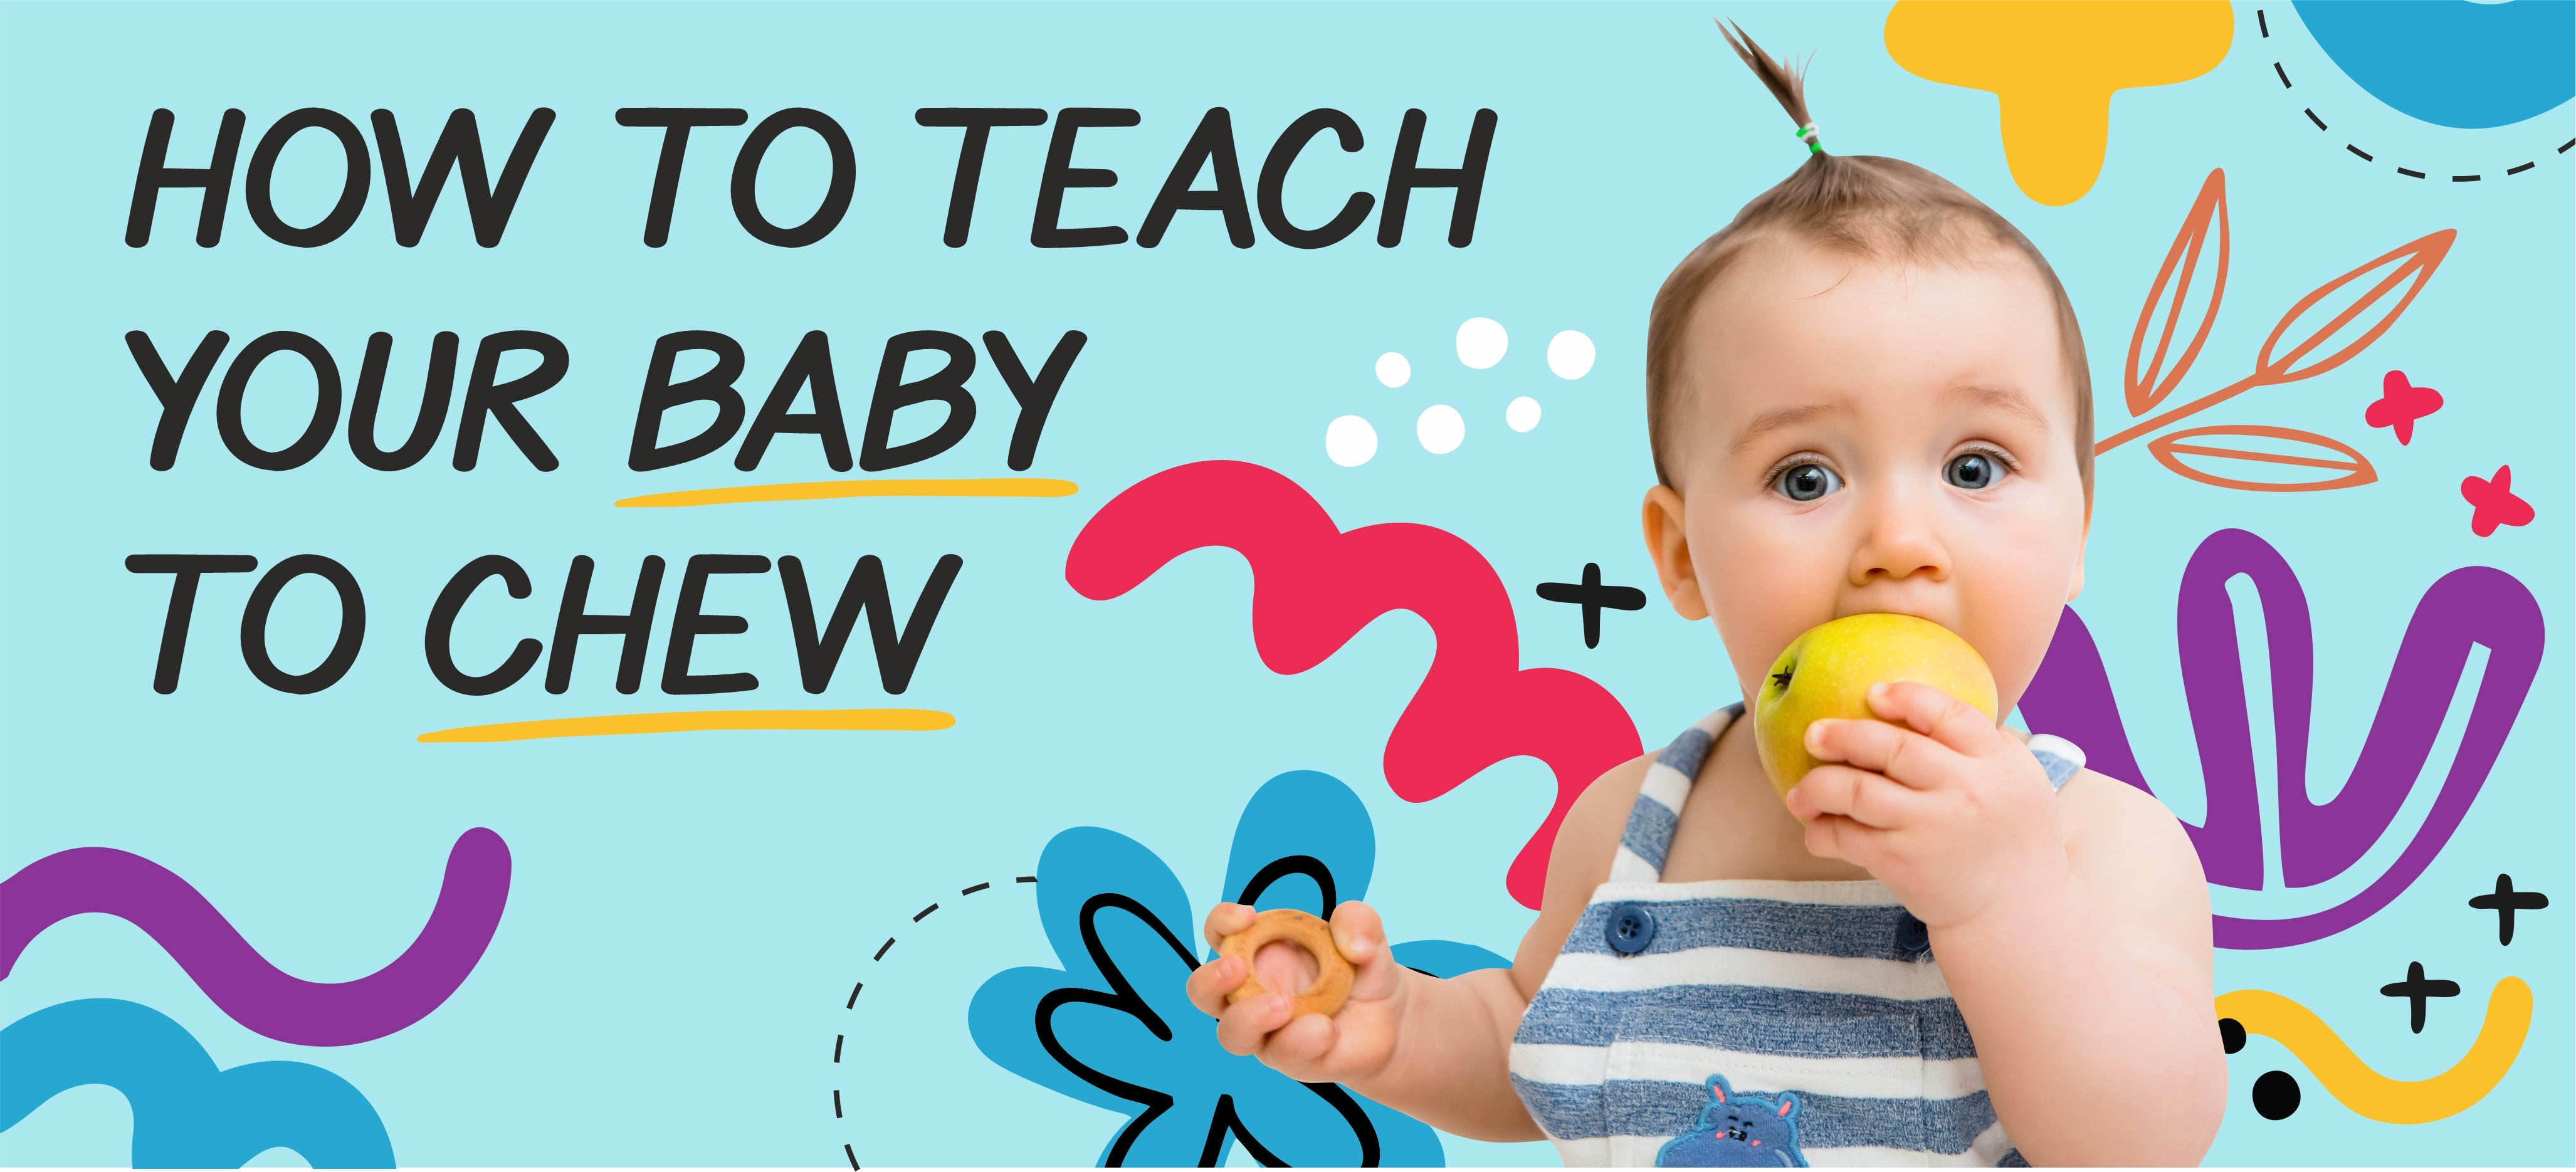 How to Teach Your Baby to Chew